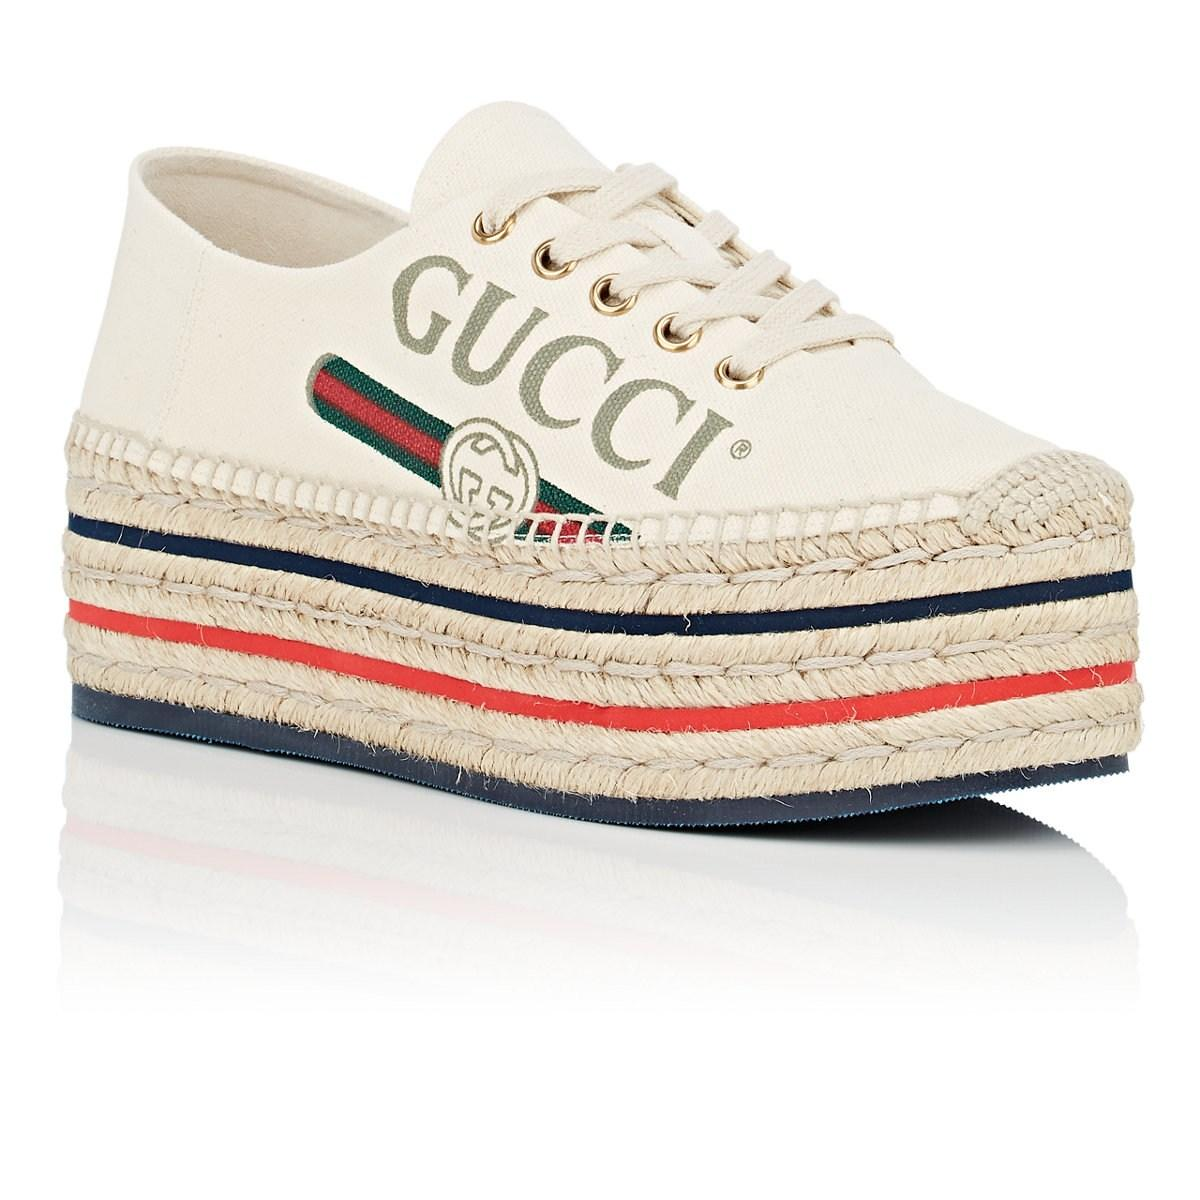 0312f8a1023f8c Gucci - White Canvas Platform Espadrille Sneakers - Lyst. View fullscreen